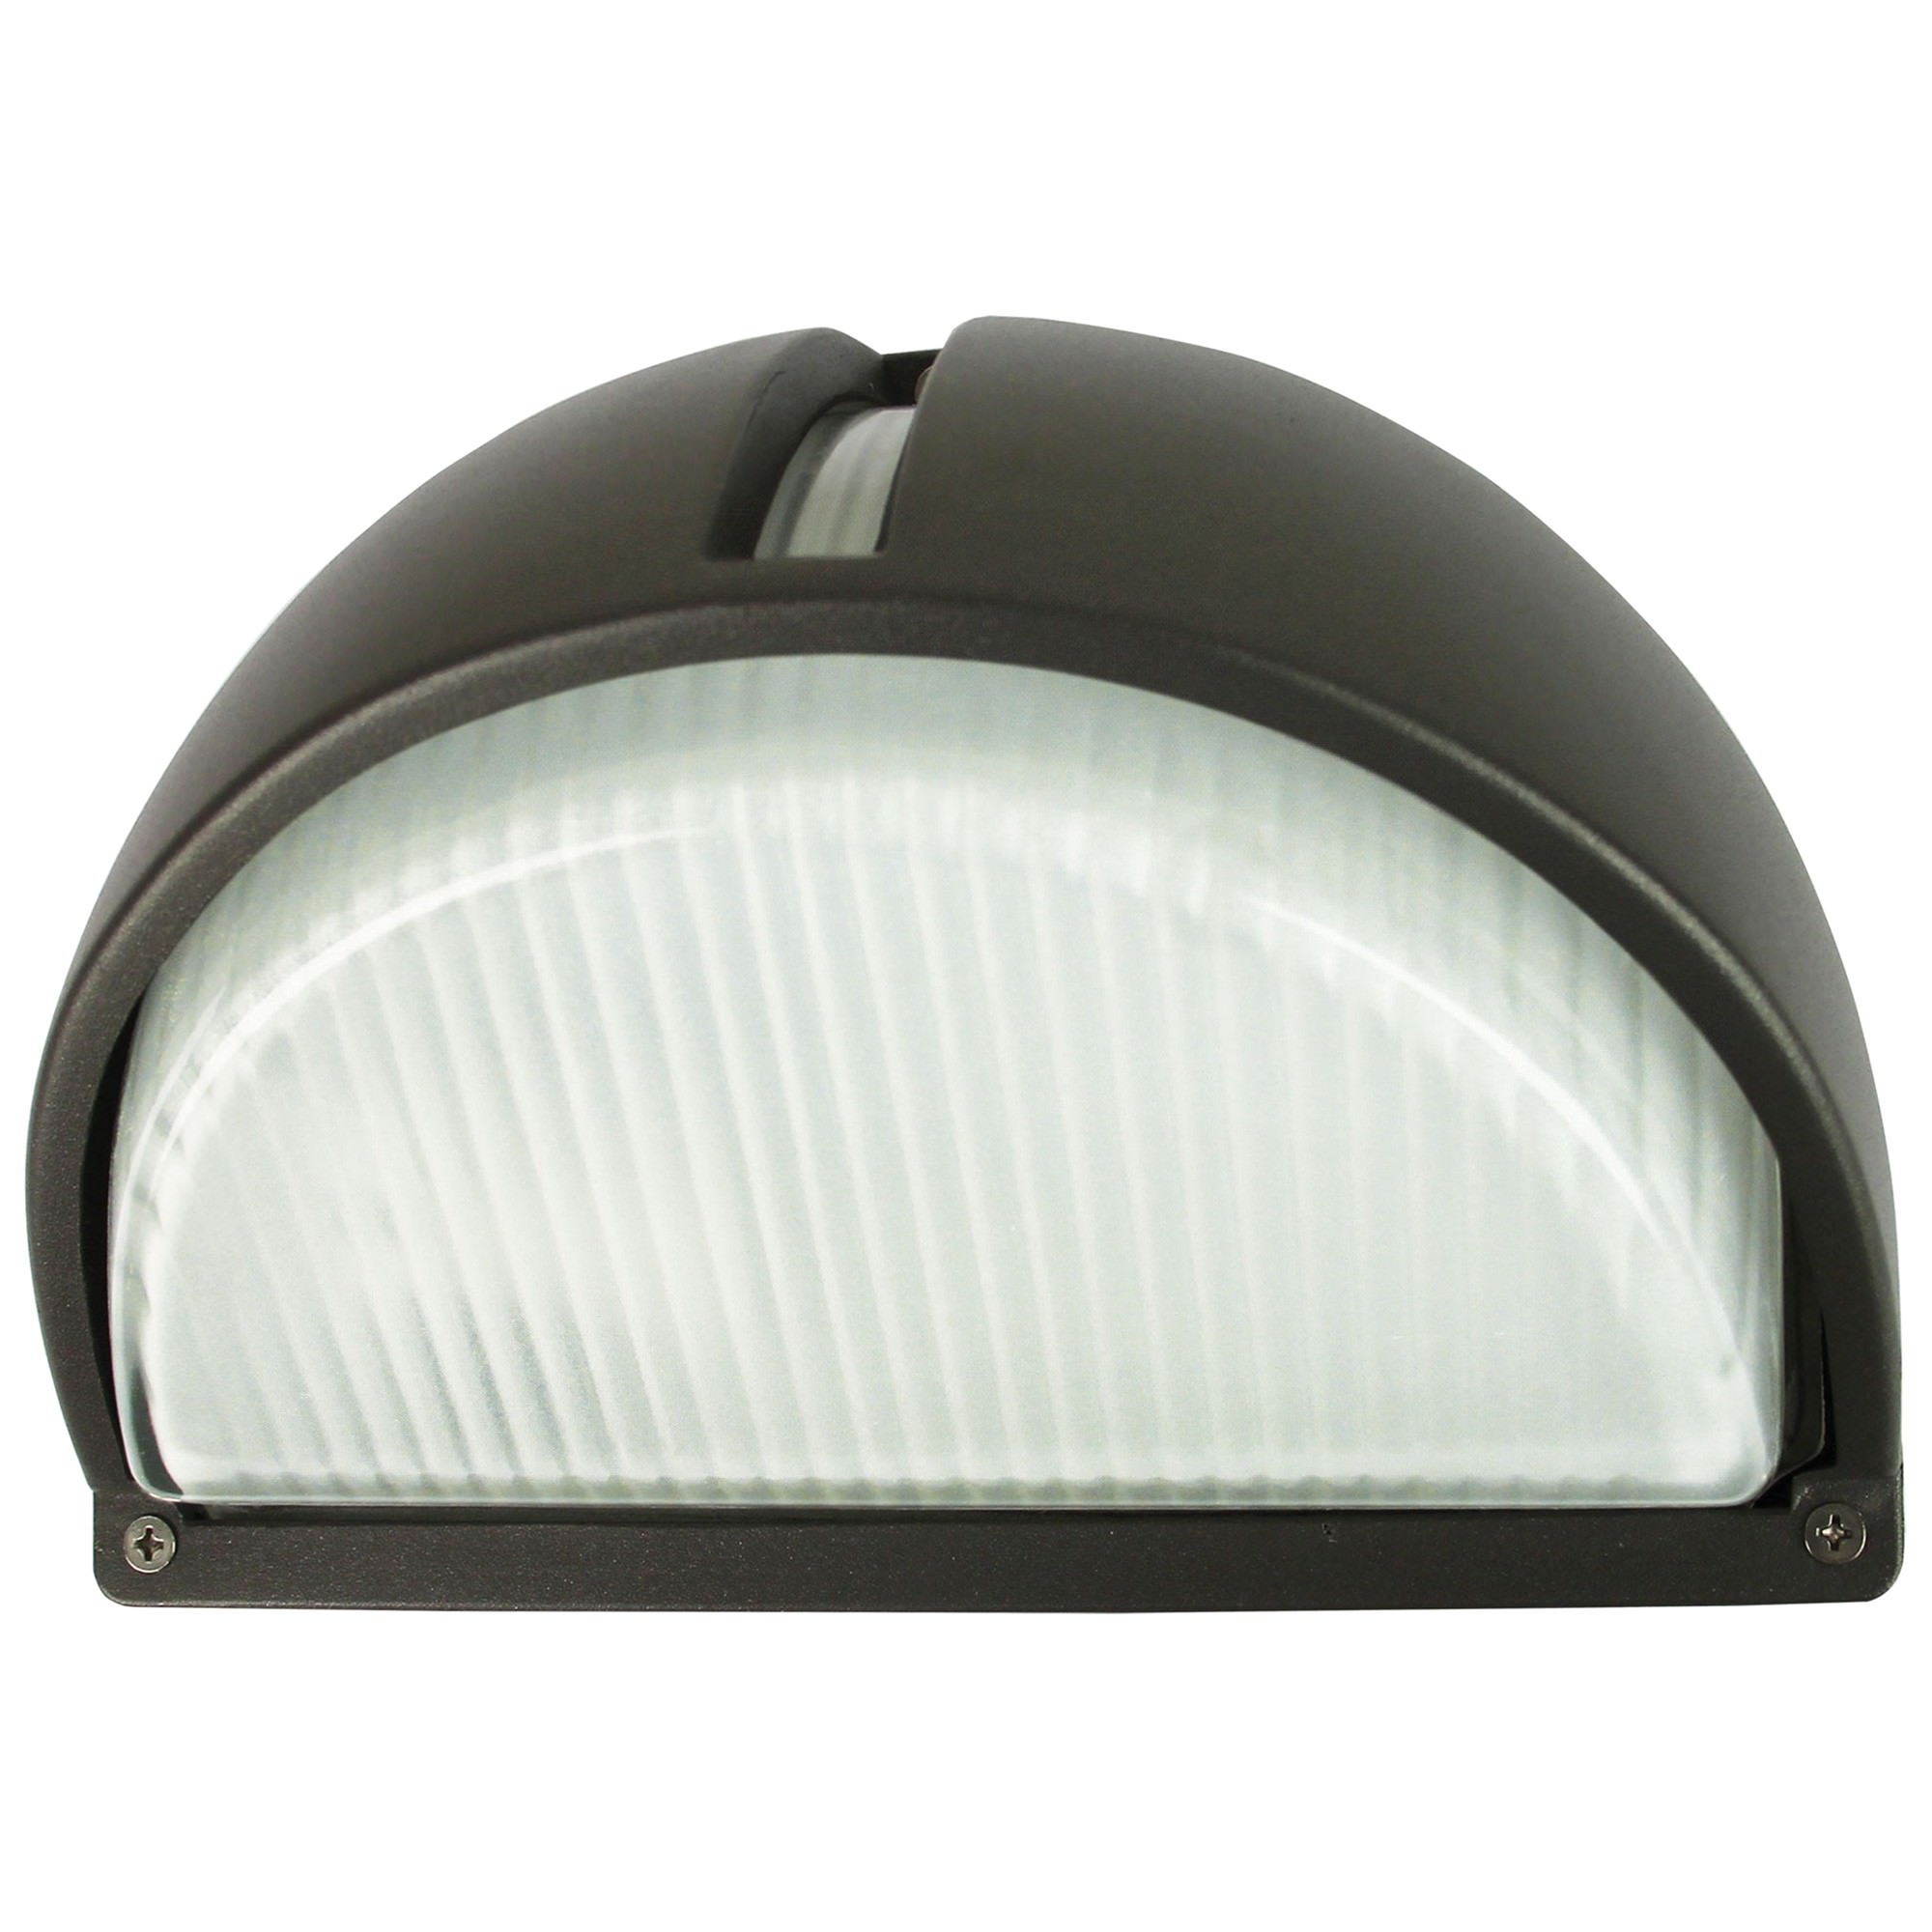 Cheval IP54 Exterior Bunker Wall Light, Graphite